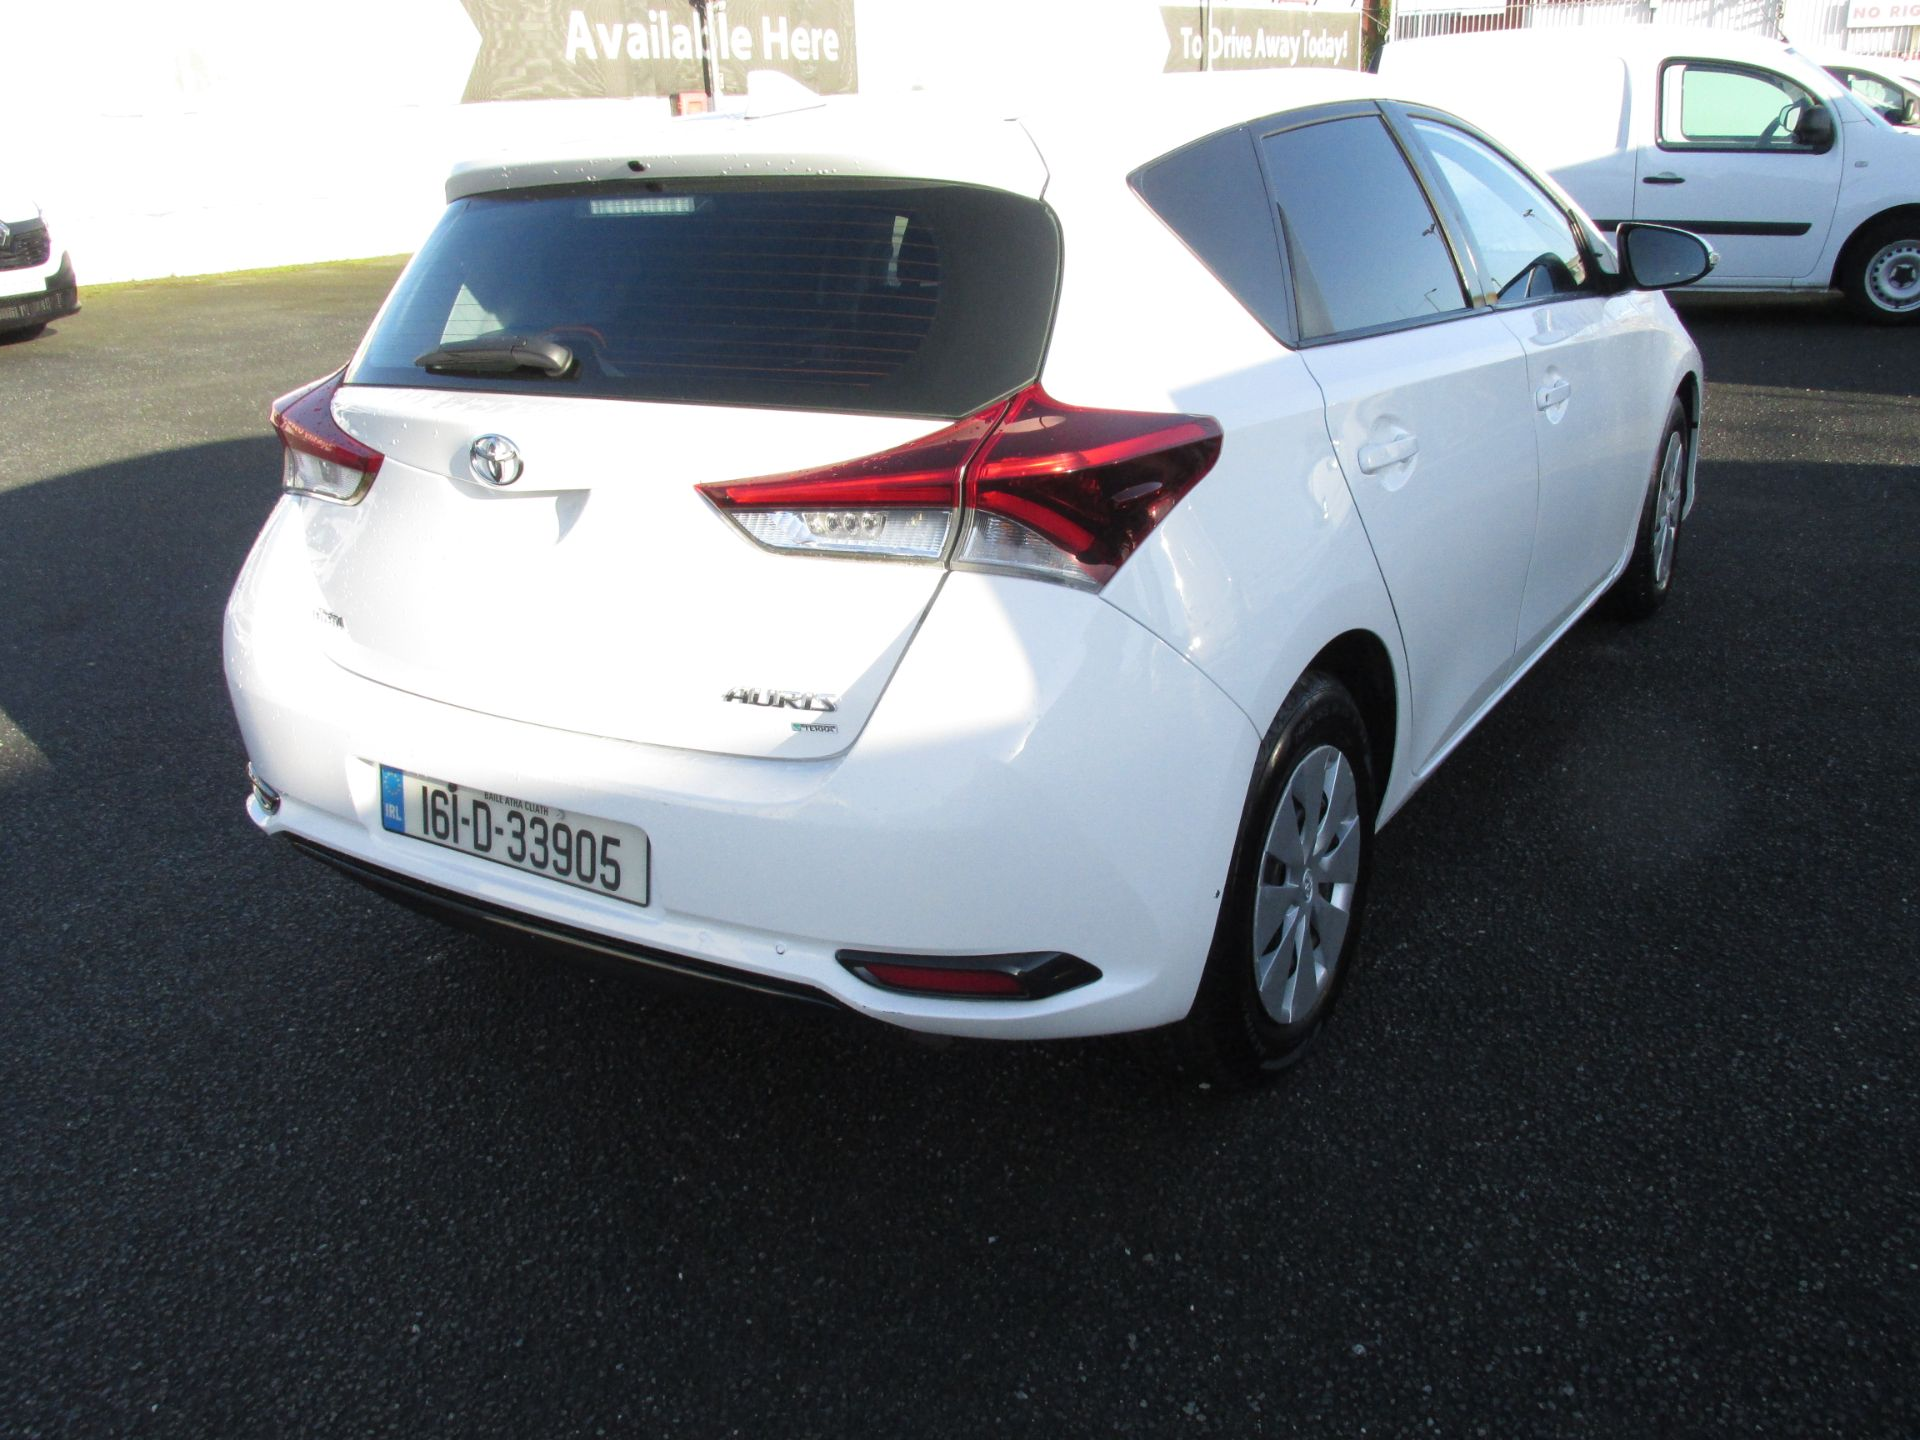 2016 Toyota Auris 1.4d-4d Terra 4DR click and collect call sales for more info (161D33905) Image 7